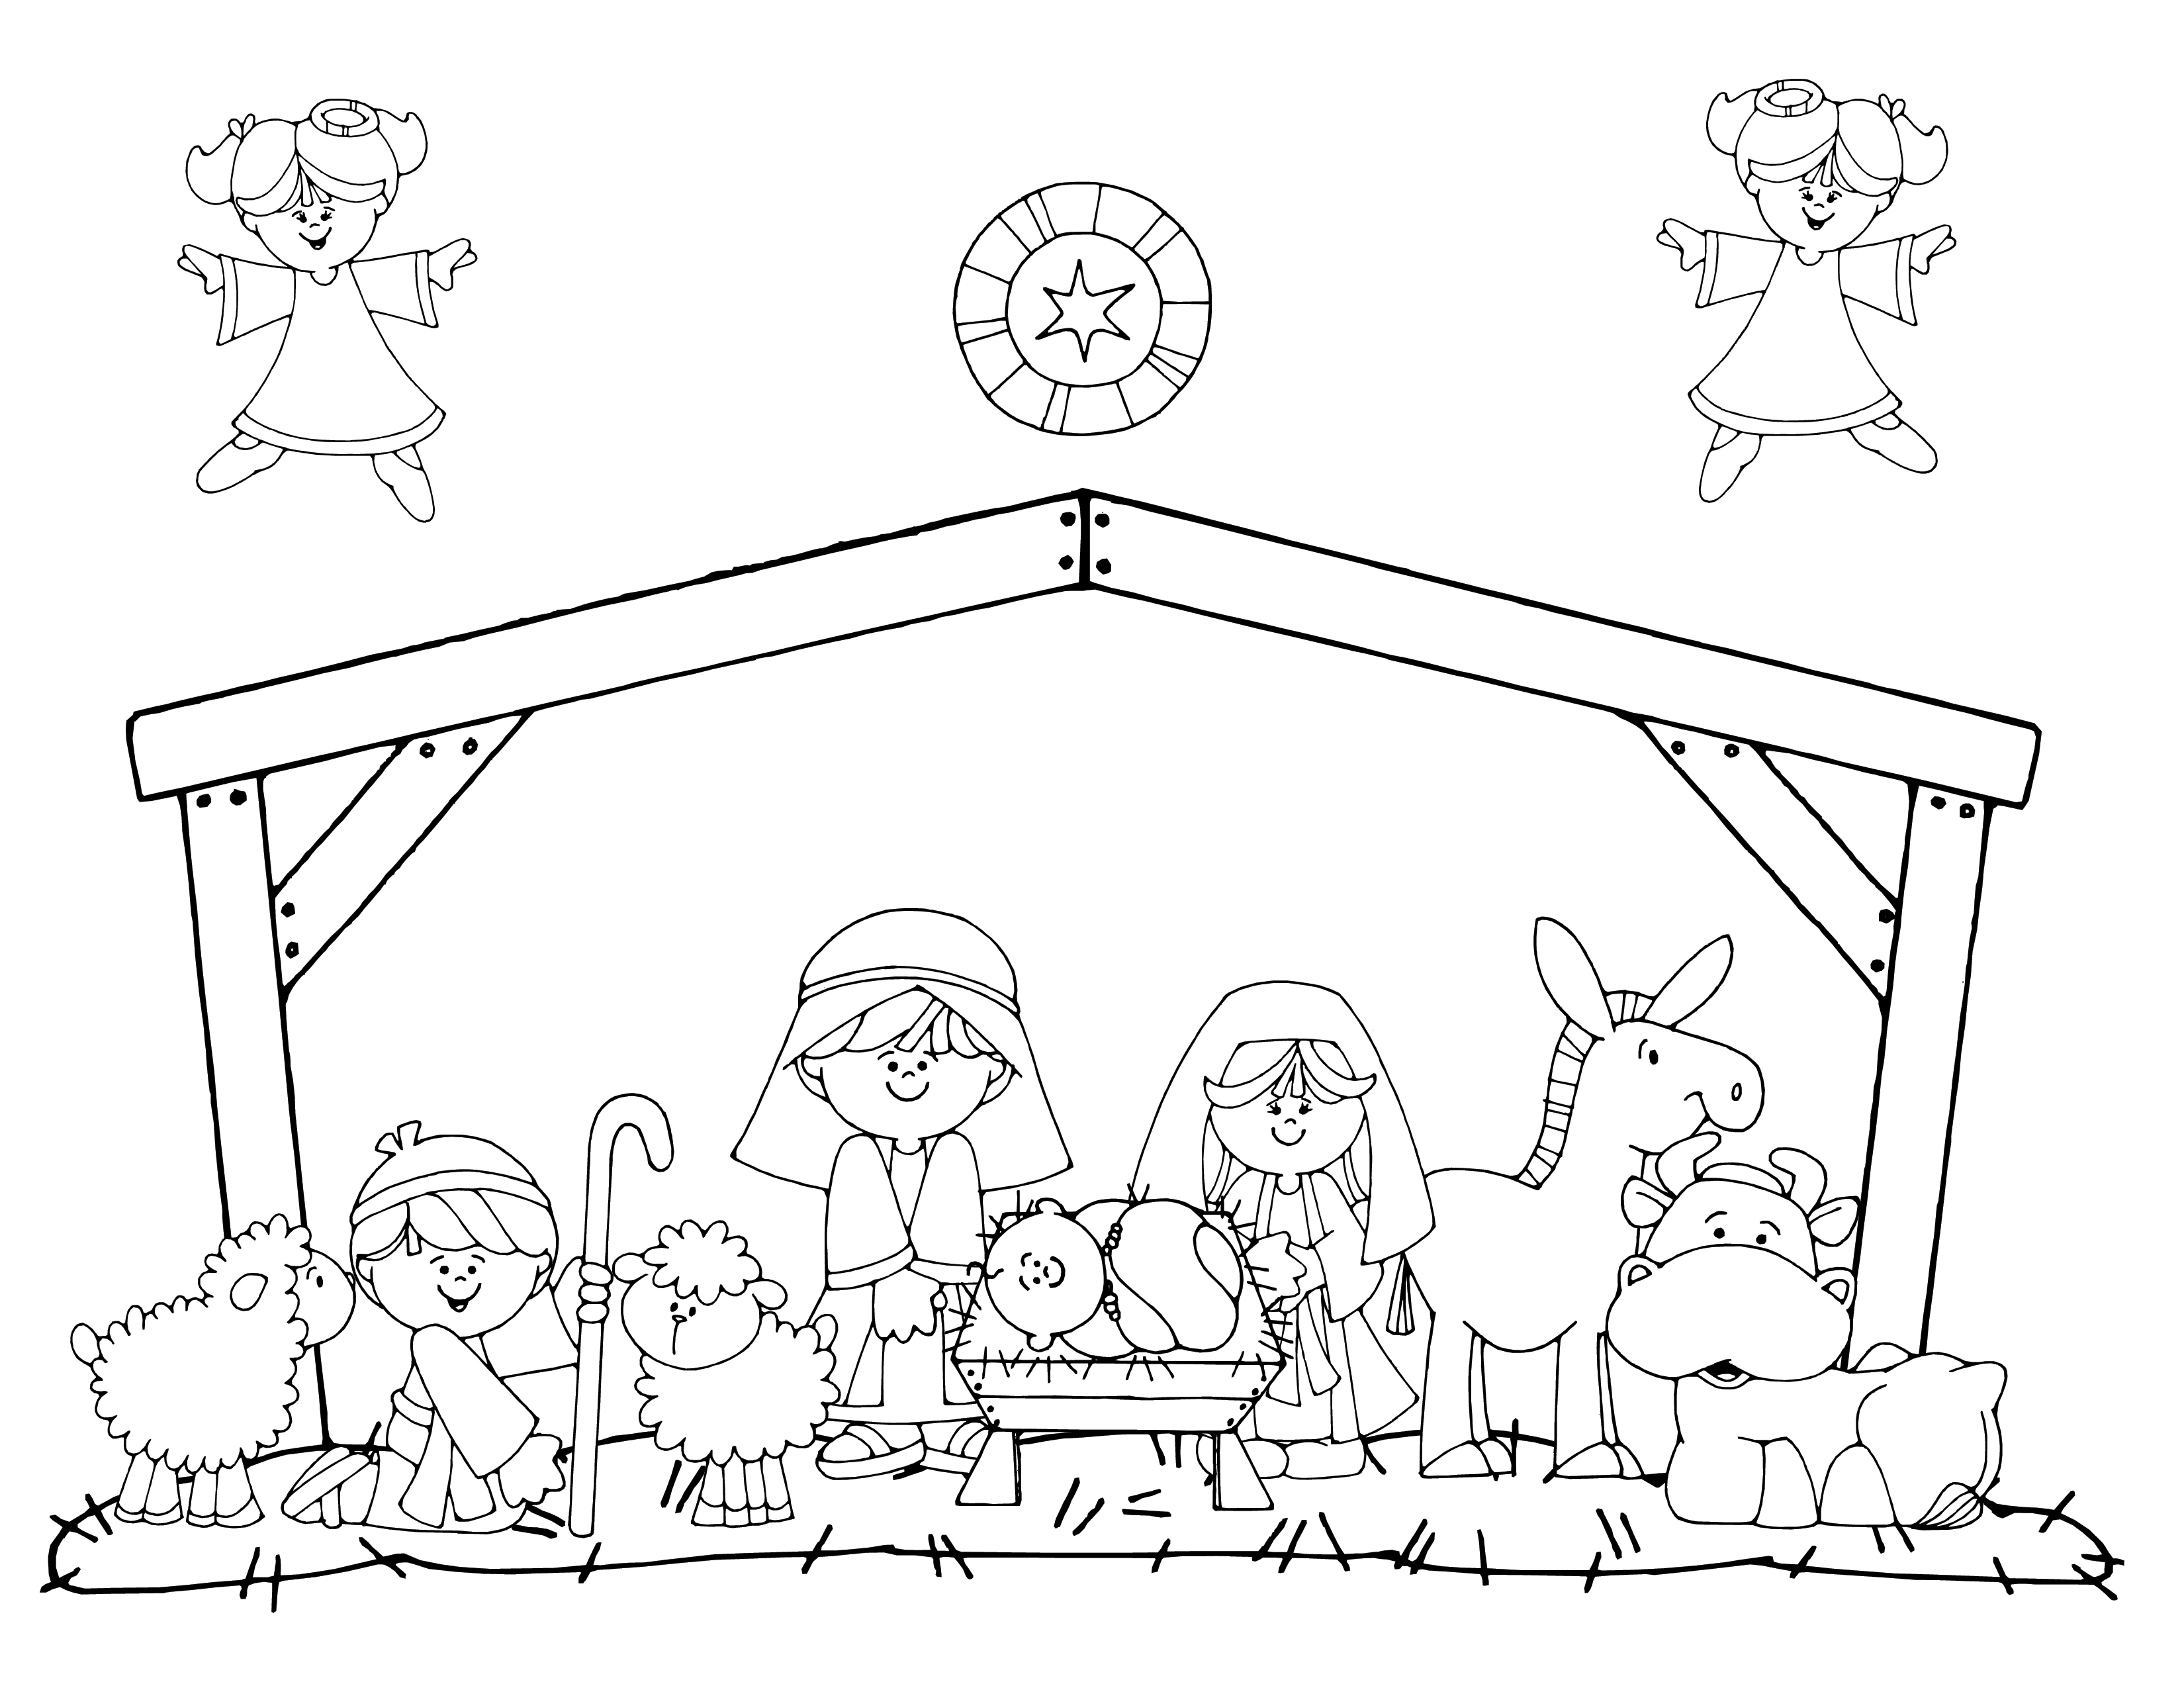 naciemiento also christmas baby jesus coloring page on baby in a manger coloring pages furthermore free jesus christmas coloring pages on baby in a manger coloring pages together with baby in a manger coloring pages 3 on baby in a manger coloring pages in addition baby in a manger coloring pages 4 on baby in a manger coloring pages